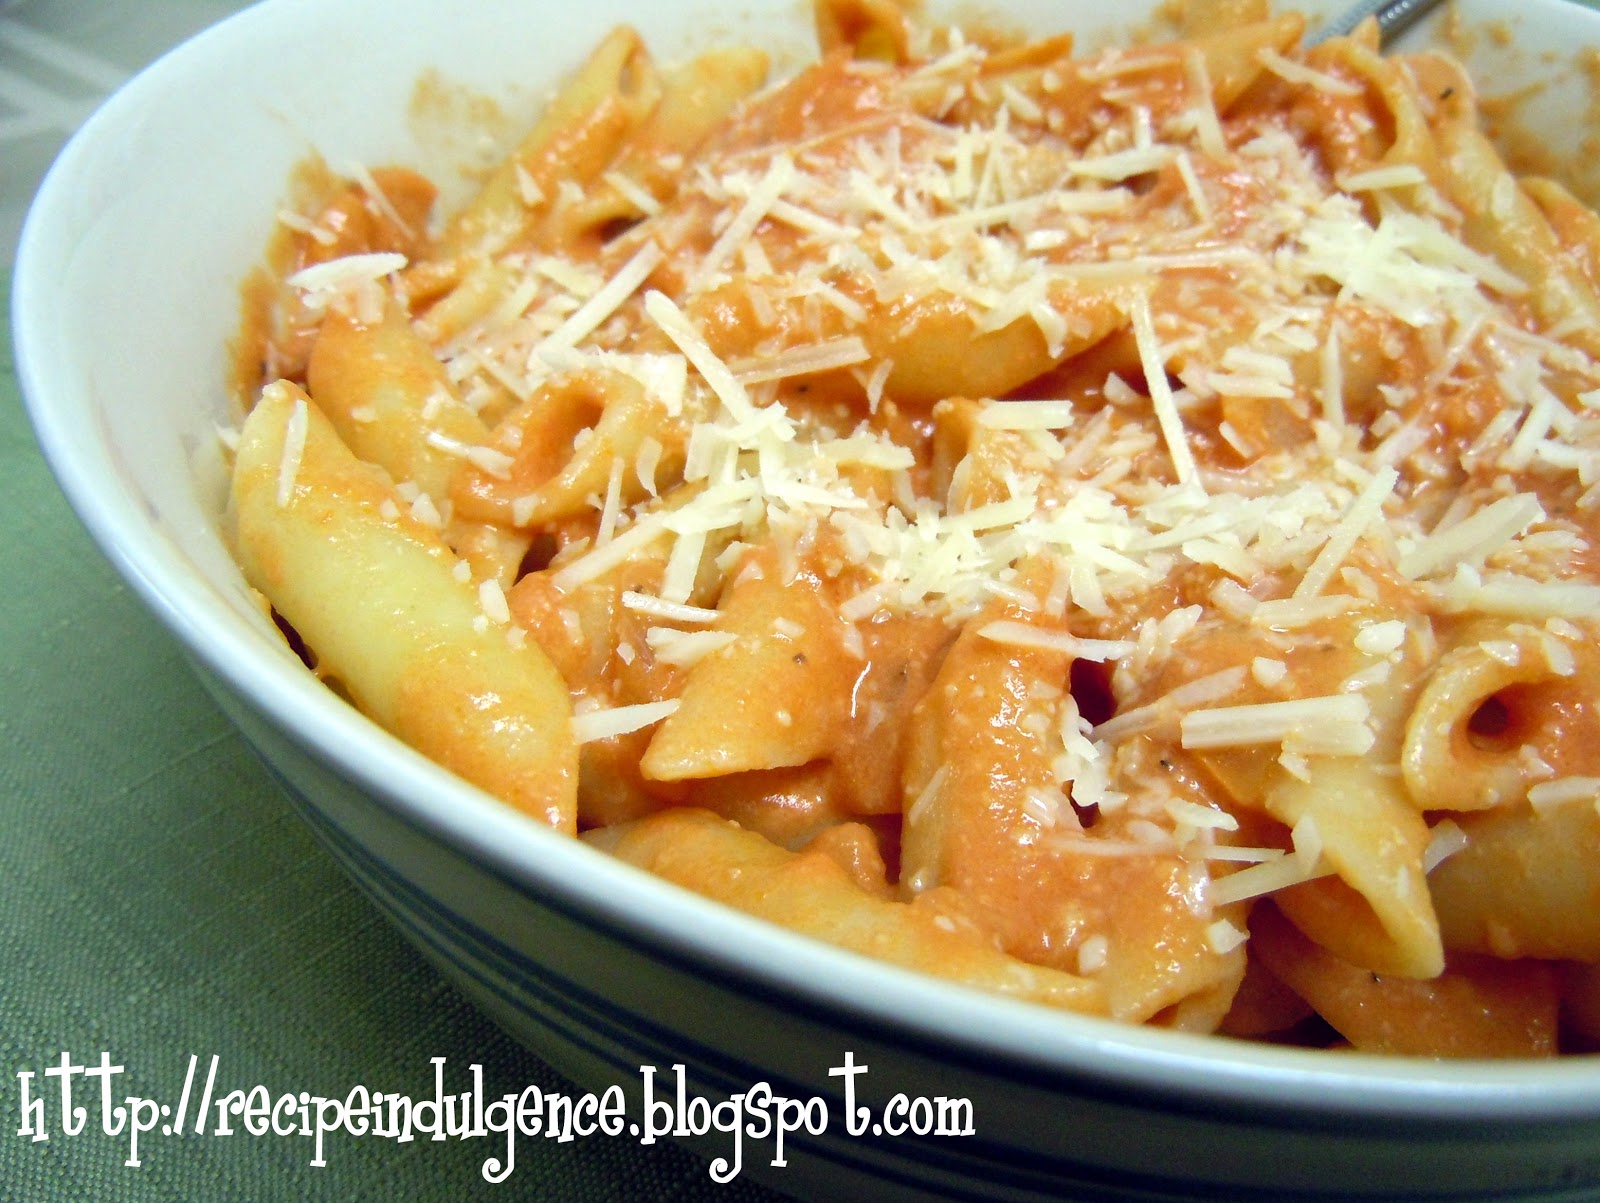 Recipe Indulgence: Pasta with Tomato Cream Sauce